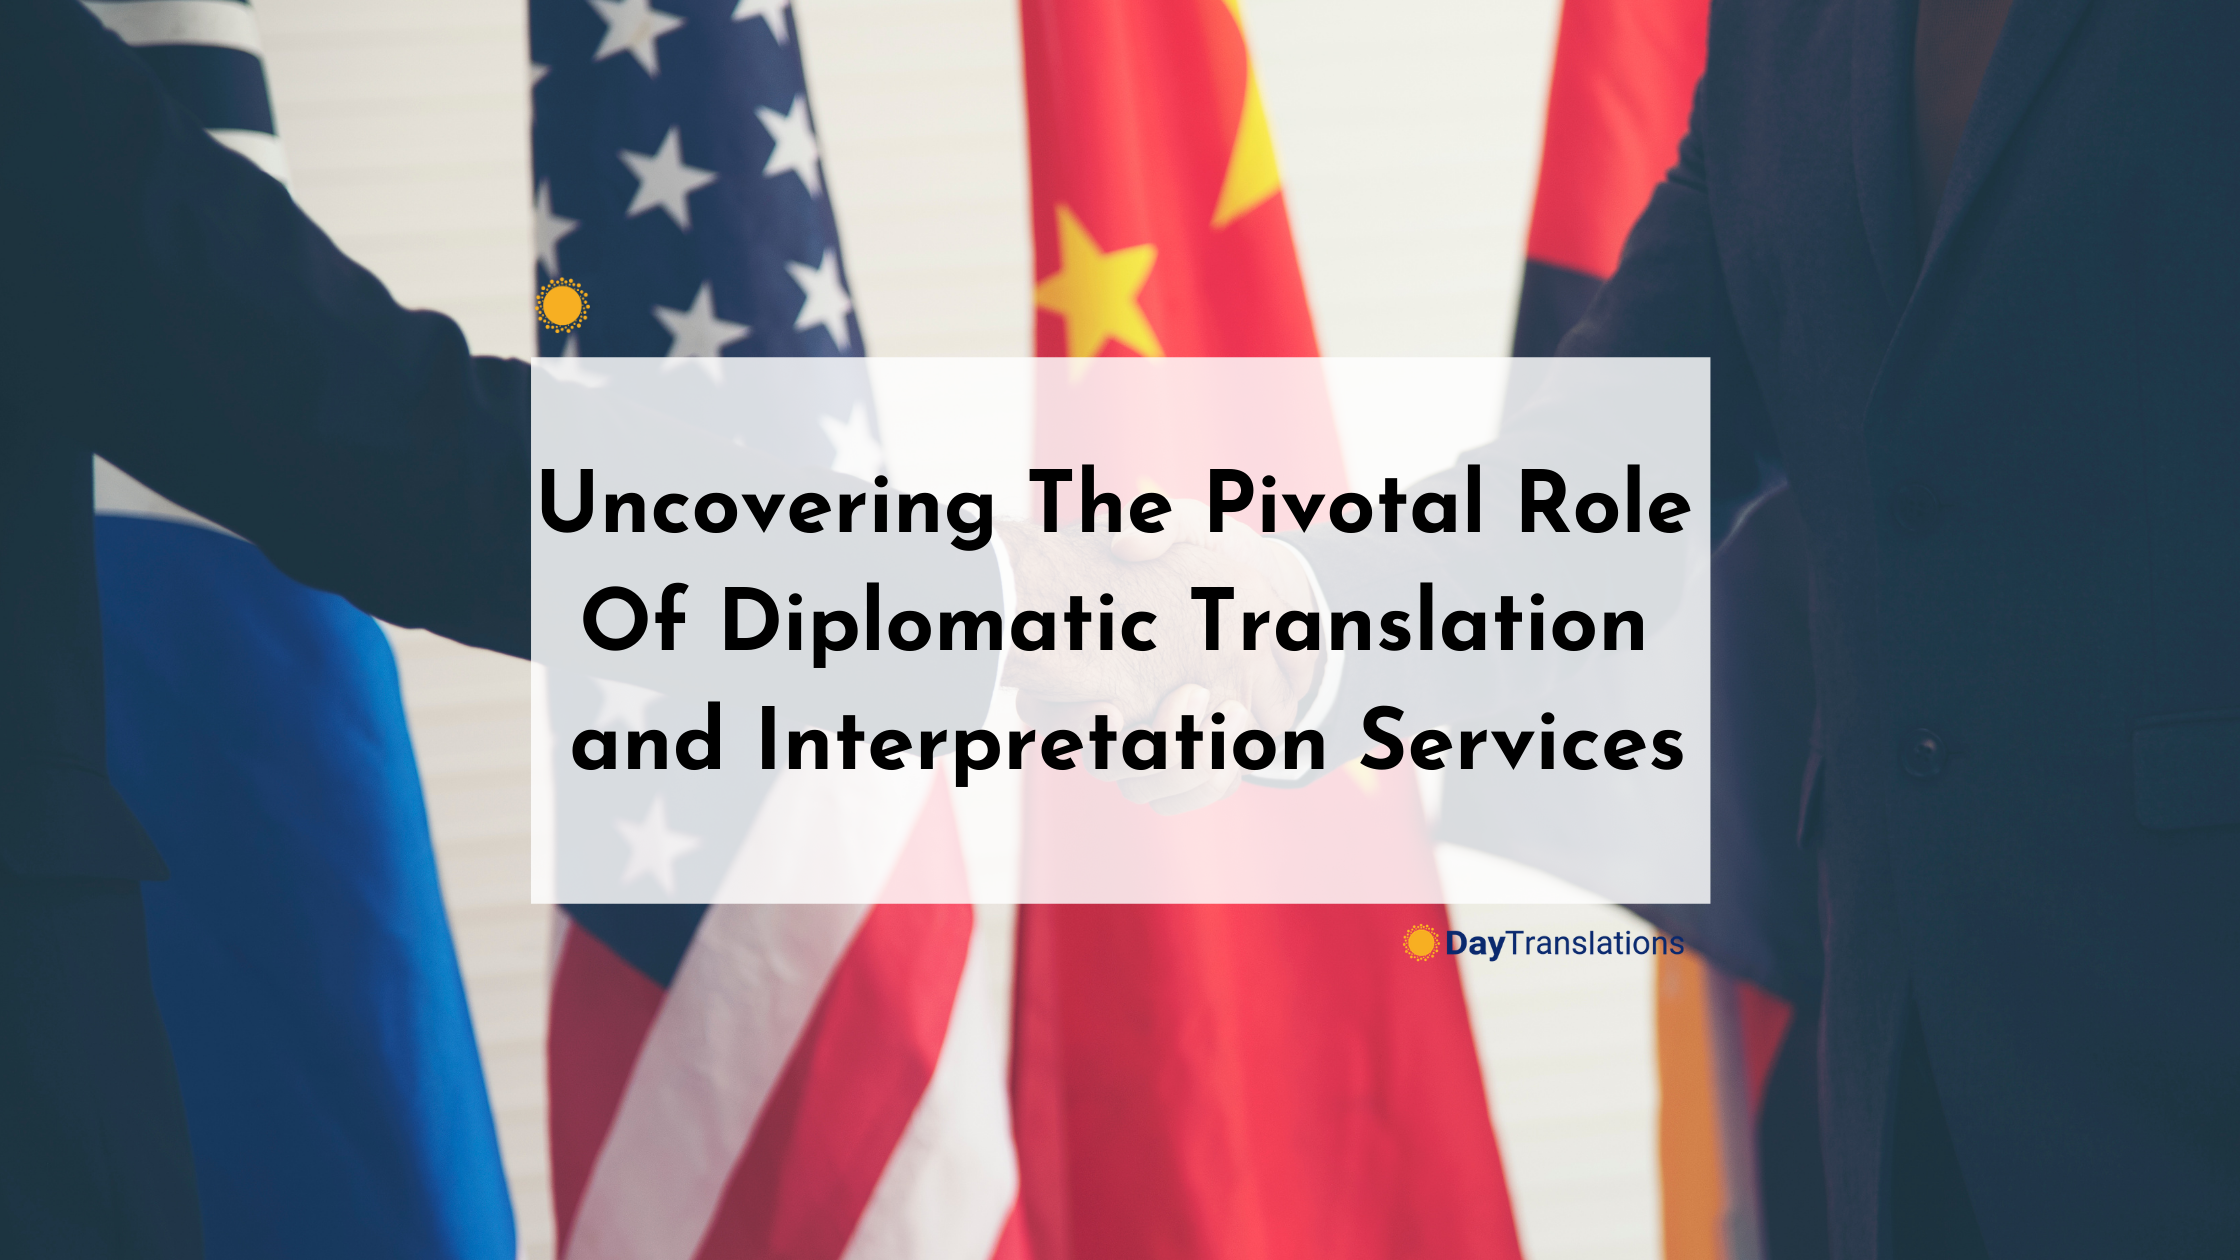 Uncovering The Pivotal Role Of Diplomatic Translation and Interpretation Services